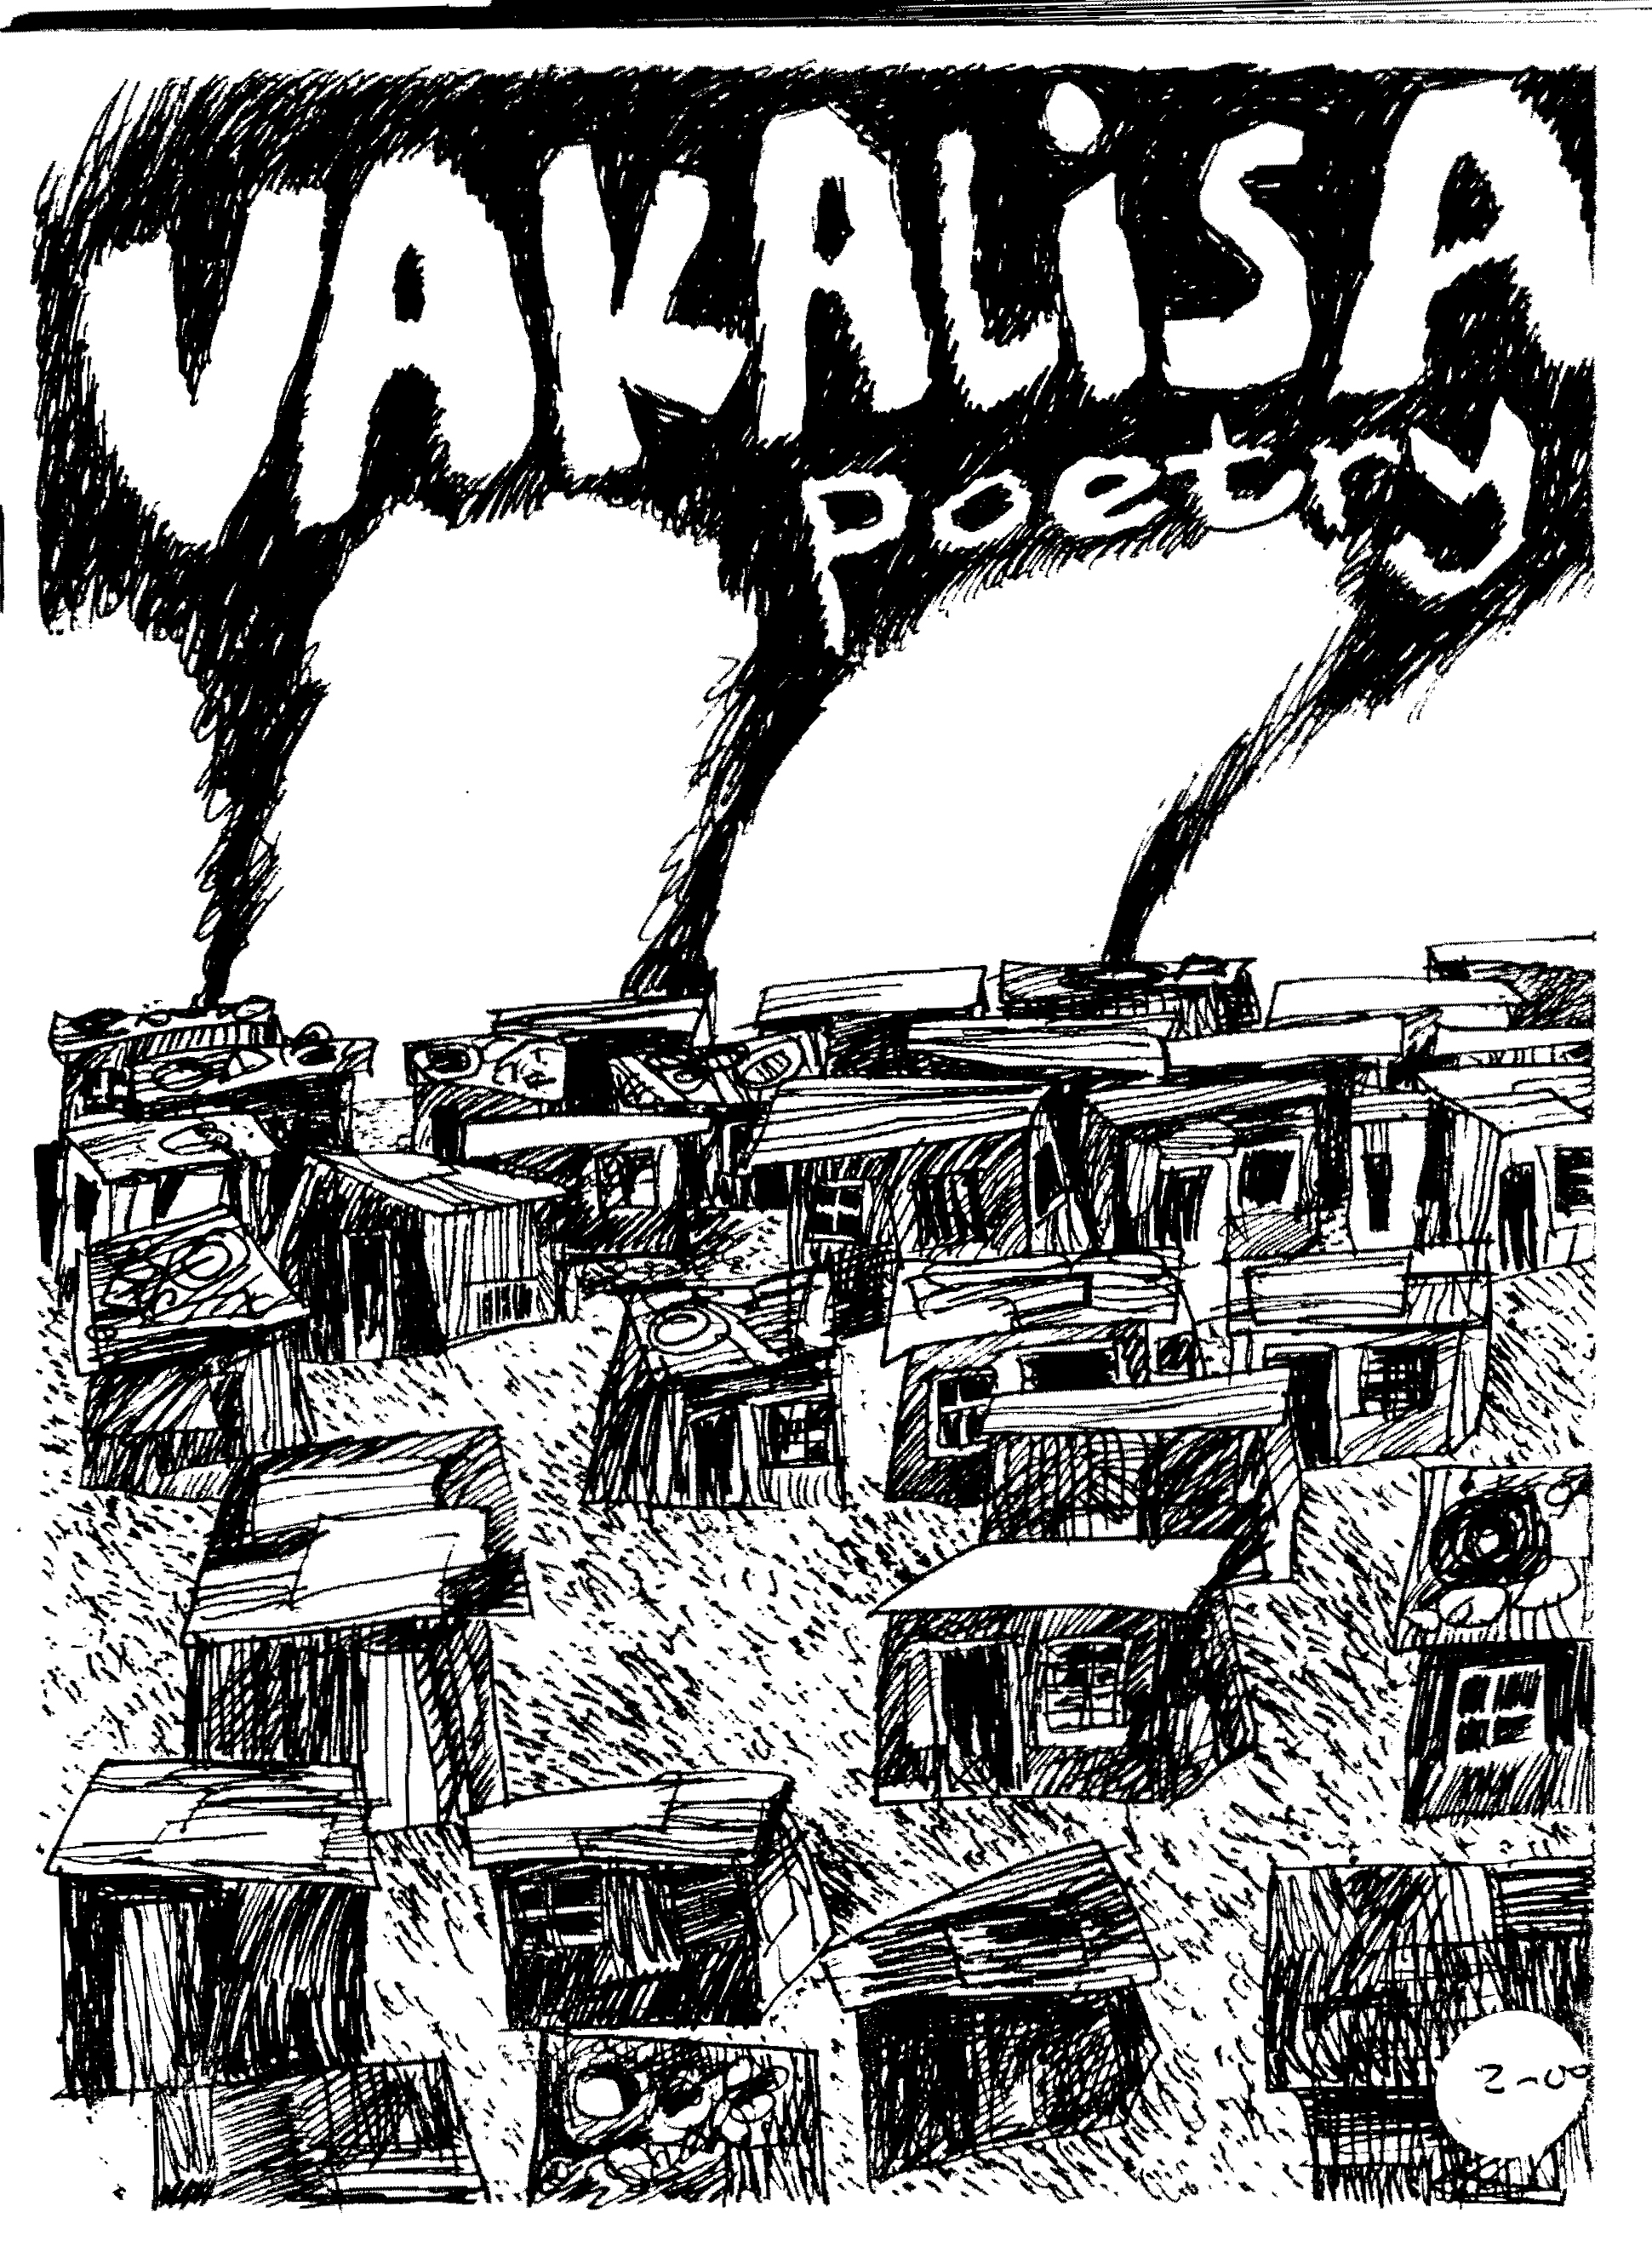 Vakalisa - Vakalisa poetry collection cover designed by Garth Erasmus (courtesy Mervyn Davids)